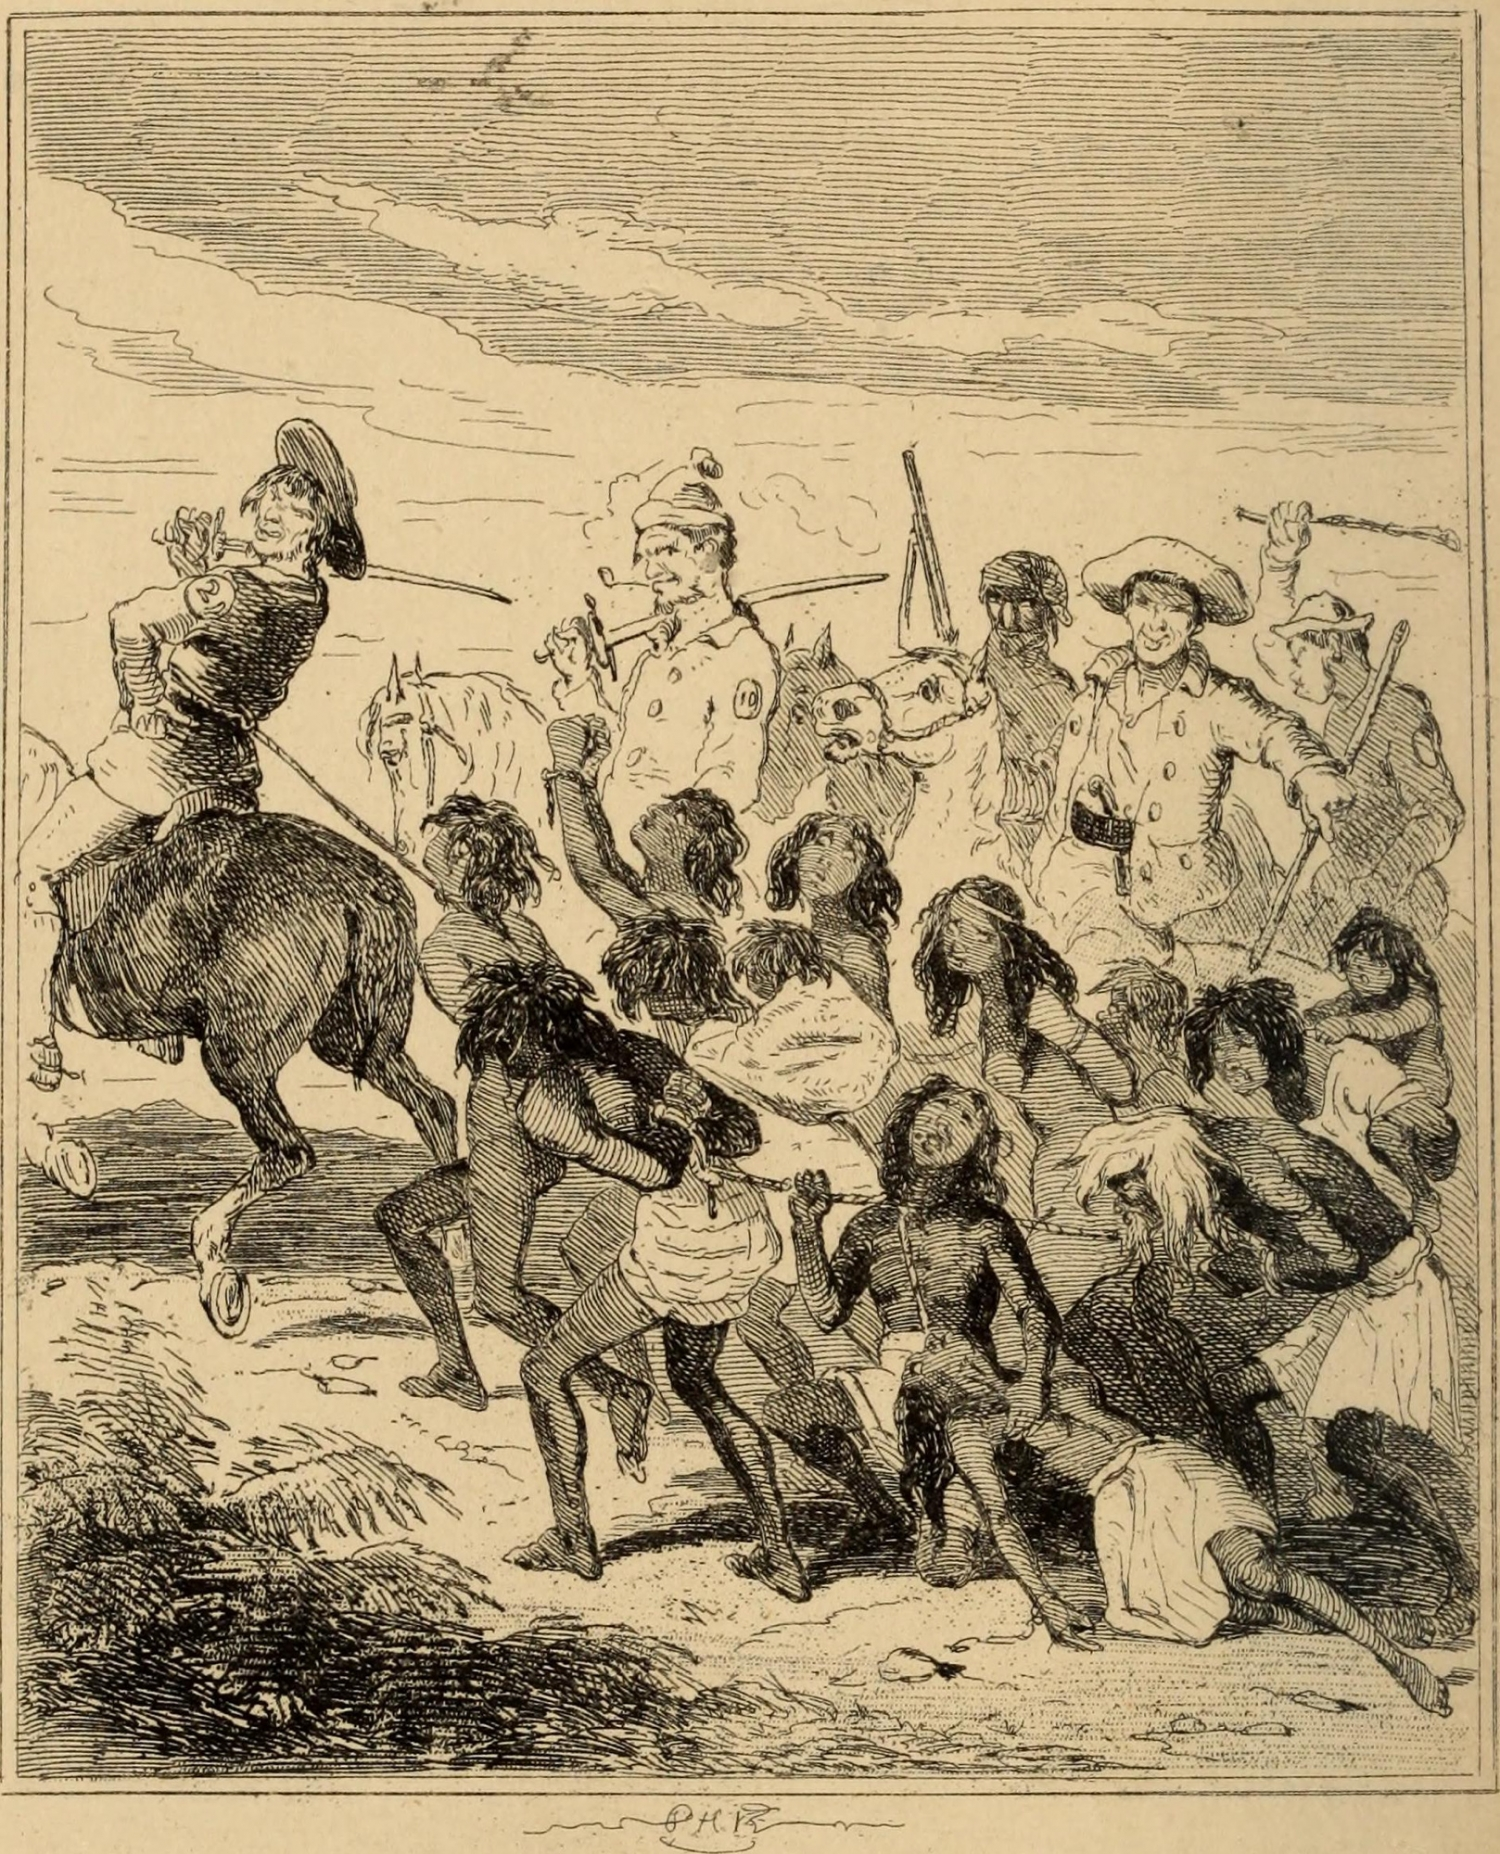 Illustration from book of a group of Aboriginal people being rounded up by white men on horseback.